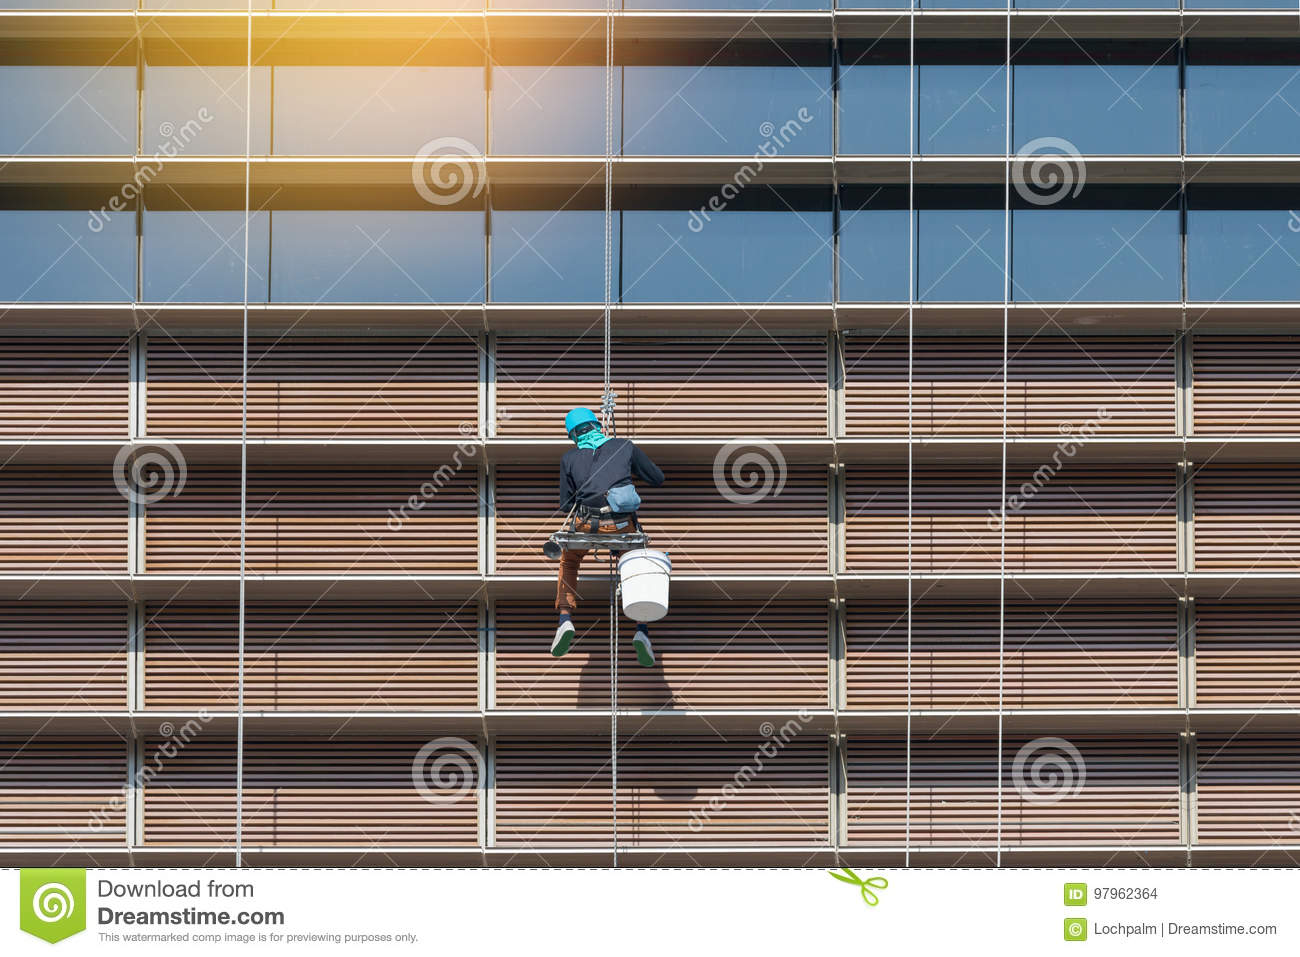 Worker hanging outside high rise building cleaning window and mirror.